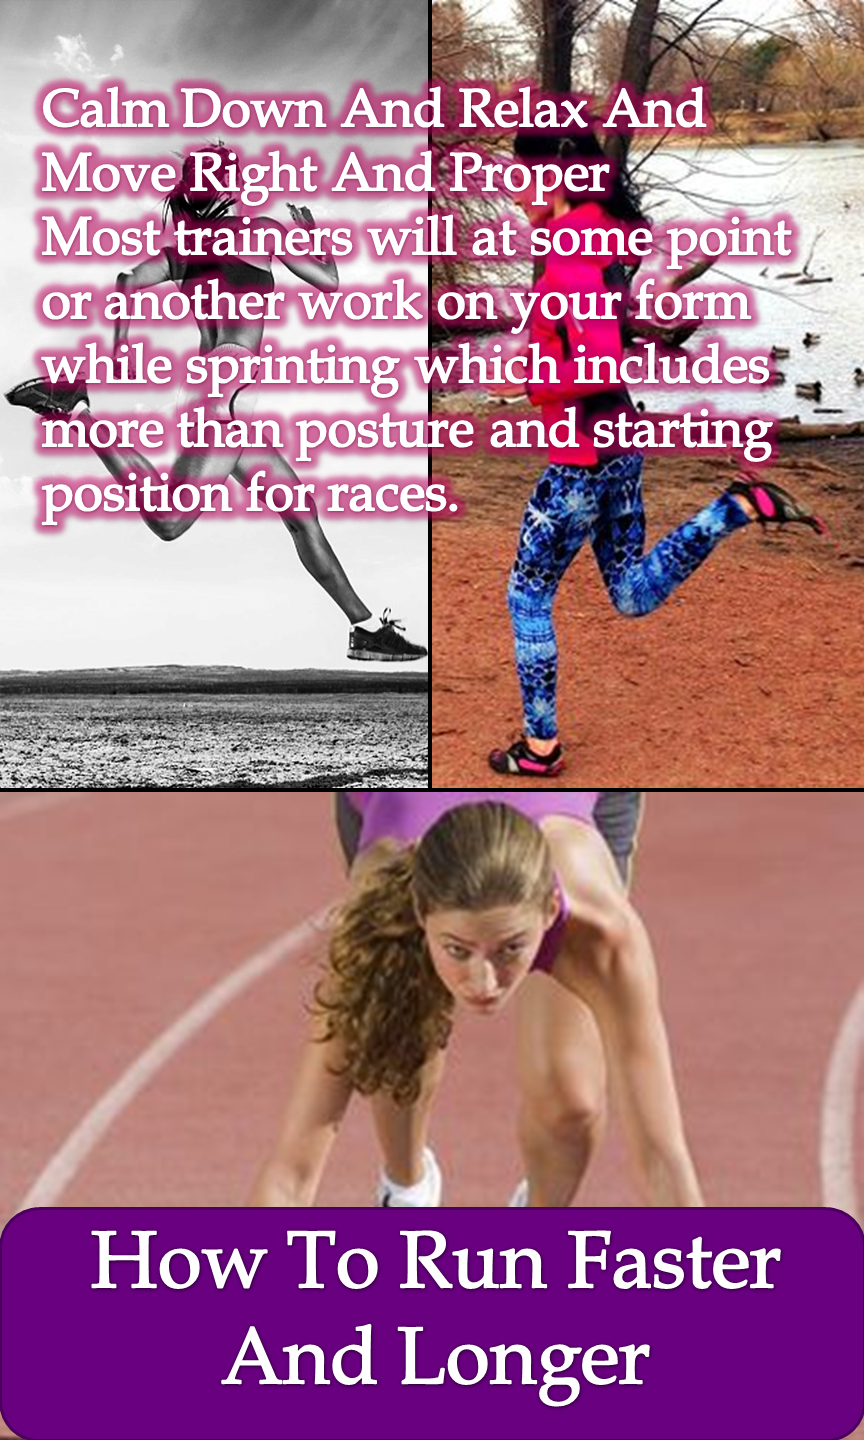 How To Run Faster And Longerfast Running Tips Running Is One Of The Great Cardio  Exercise, The Most Fastest Way To Lose Weight Fast, Today I Have Made